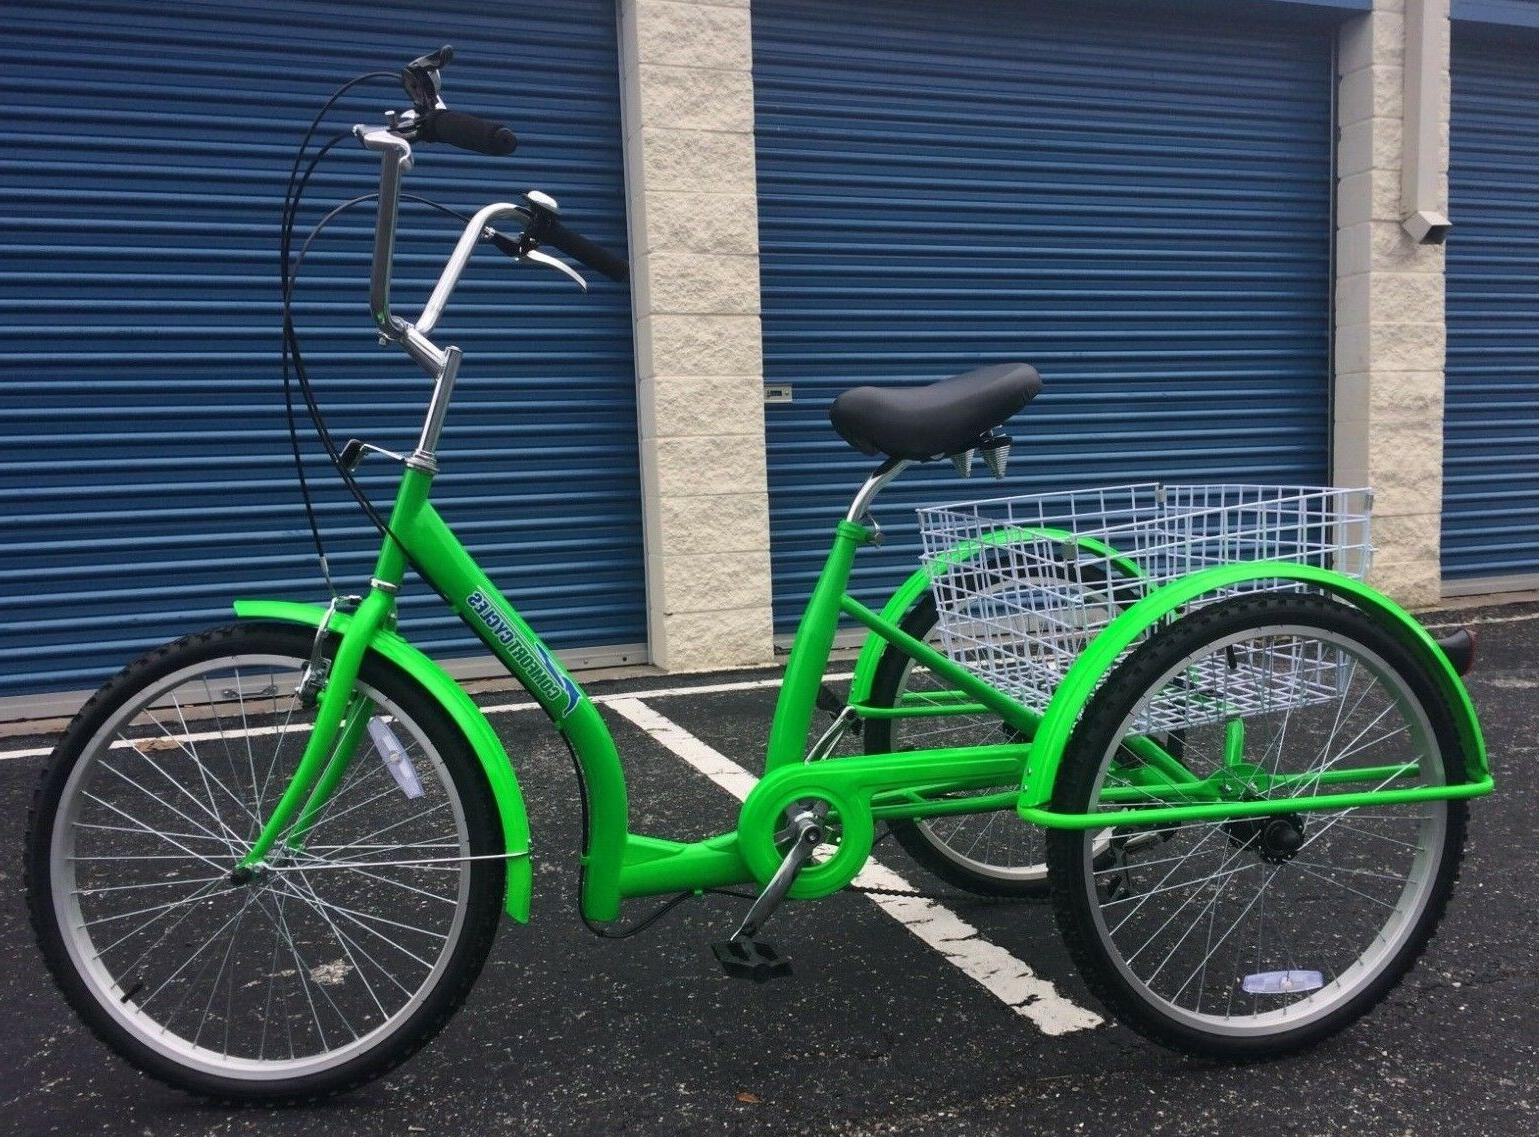 green adult tricycle u frame dutch design